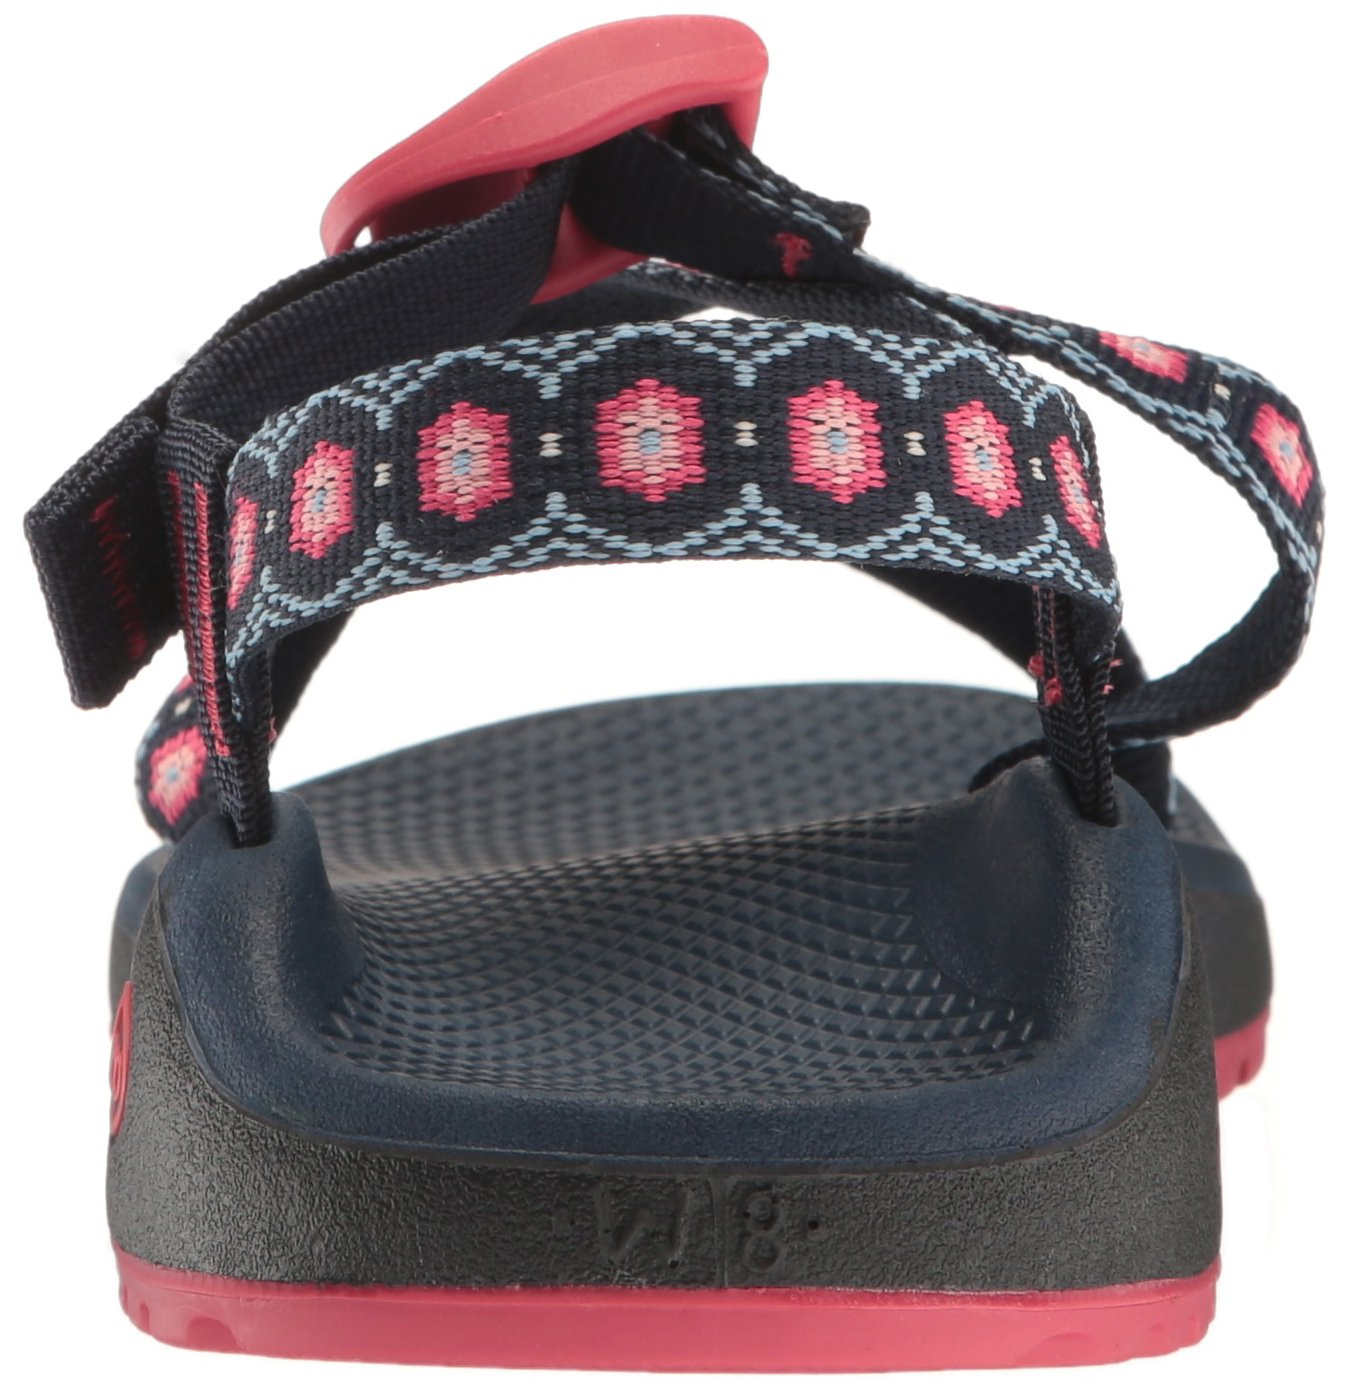 Chaco Women's Zcloud Sport Sandal B01H4XCHO2 12 B(M) US|Marquise Pink